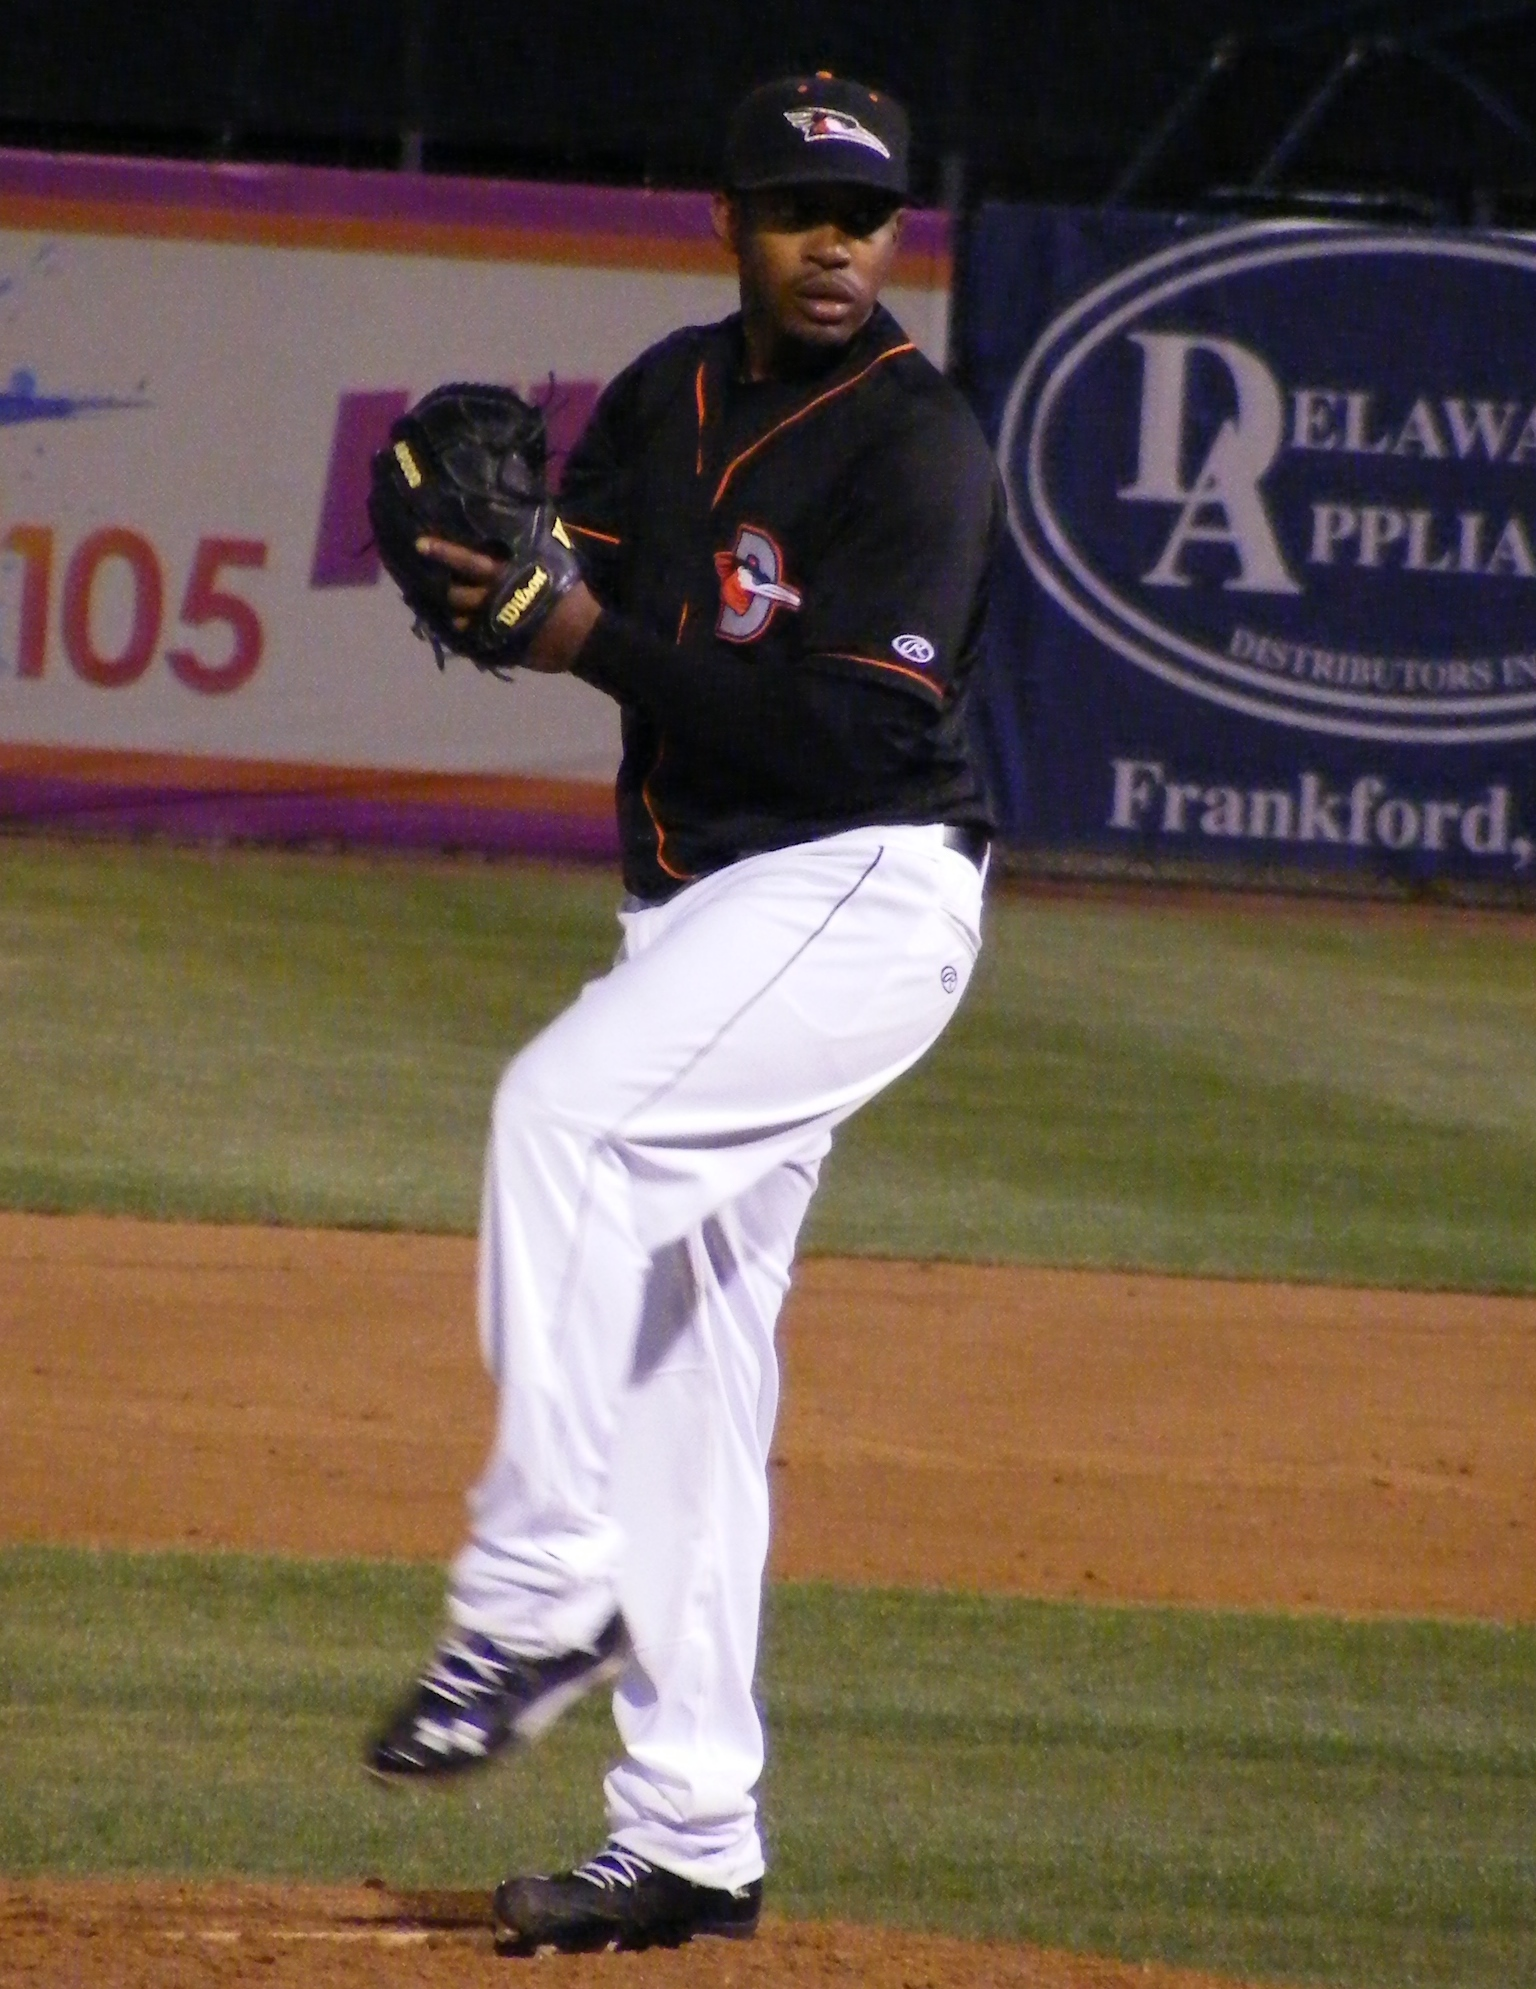 Mychal Givens pitching against Salisbury University, April 2, 2013.